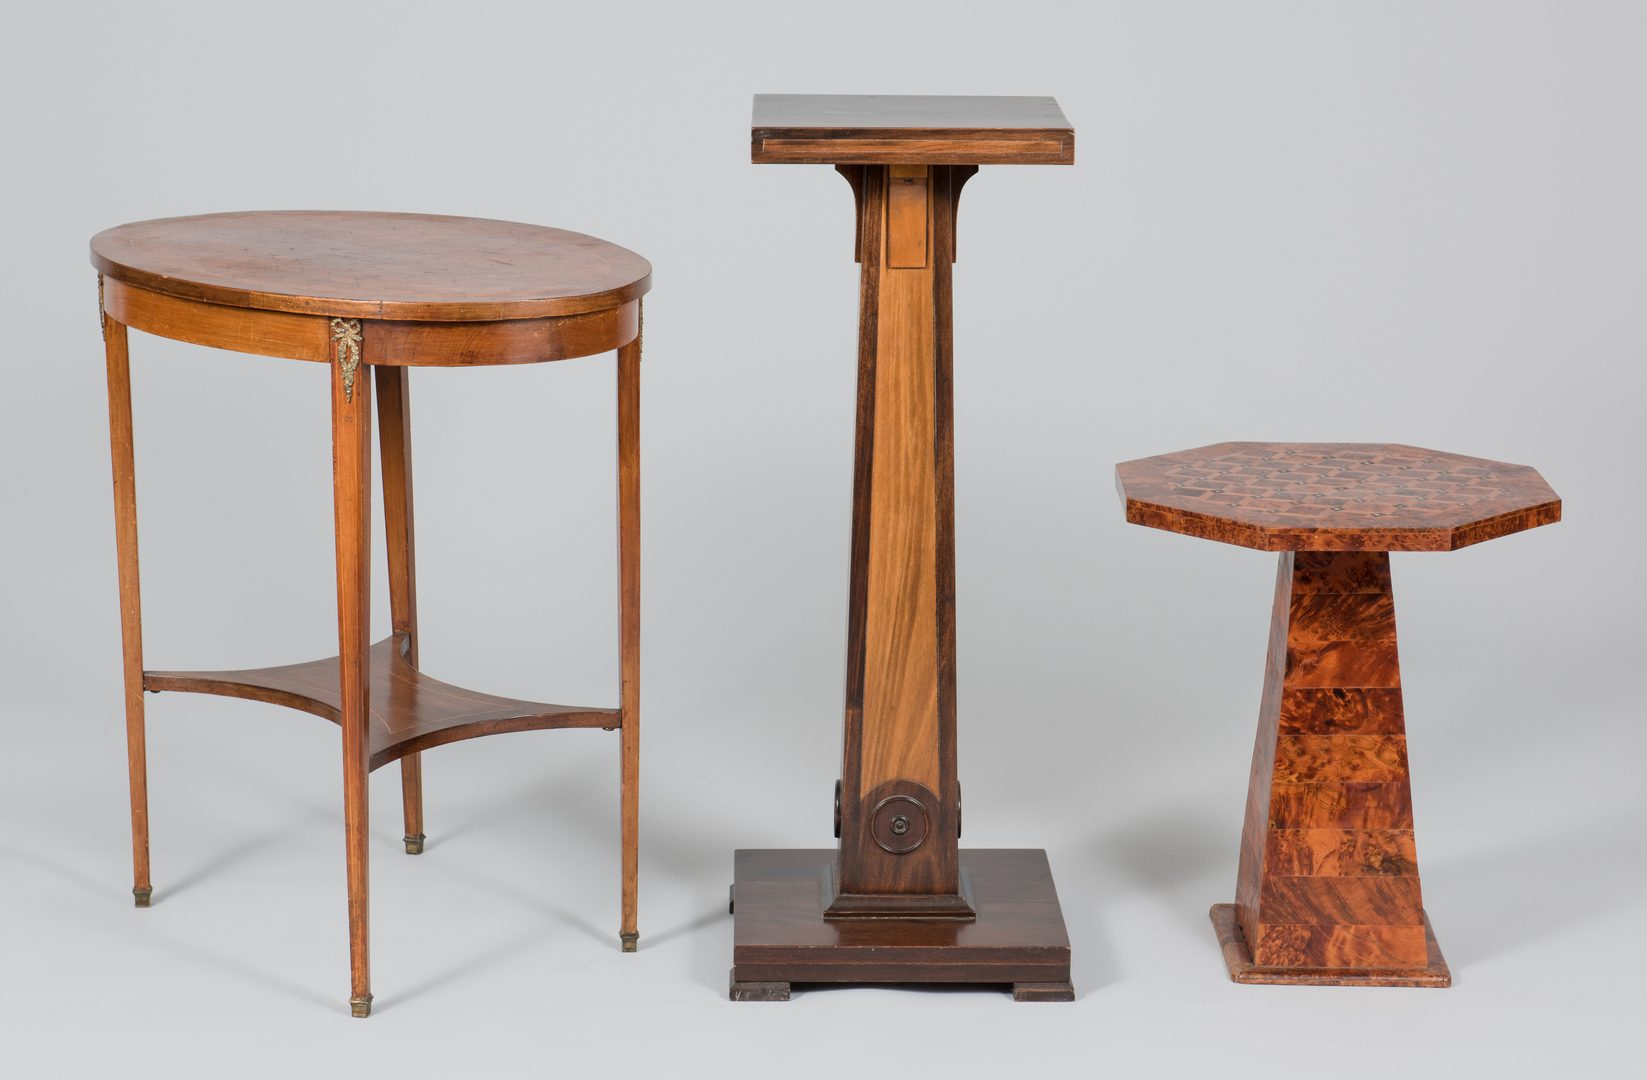 Lot 504: Three Decorative Tables / Stands